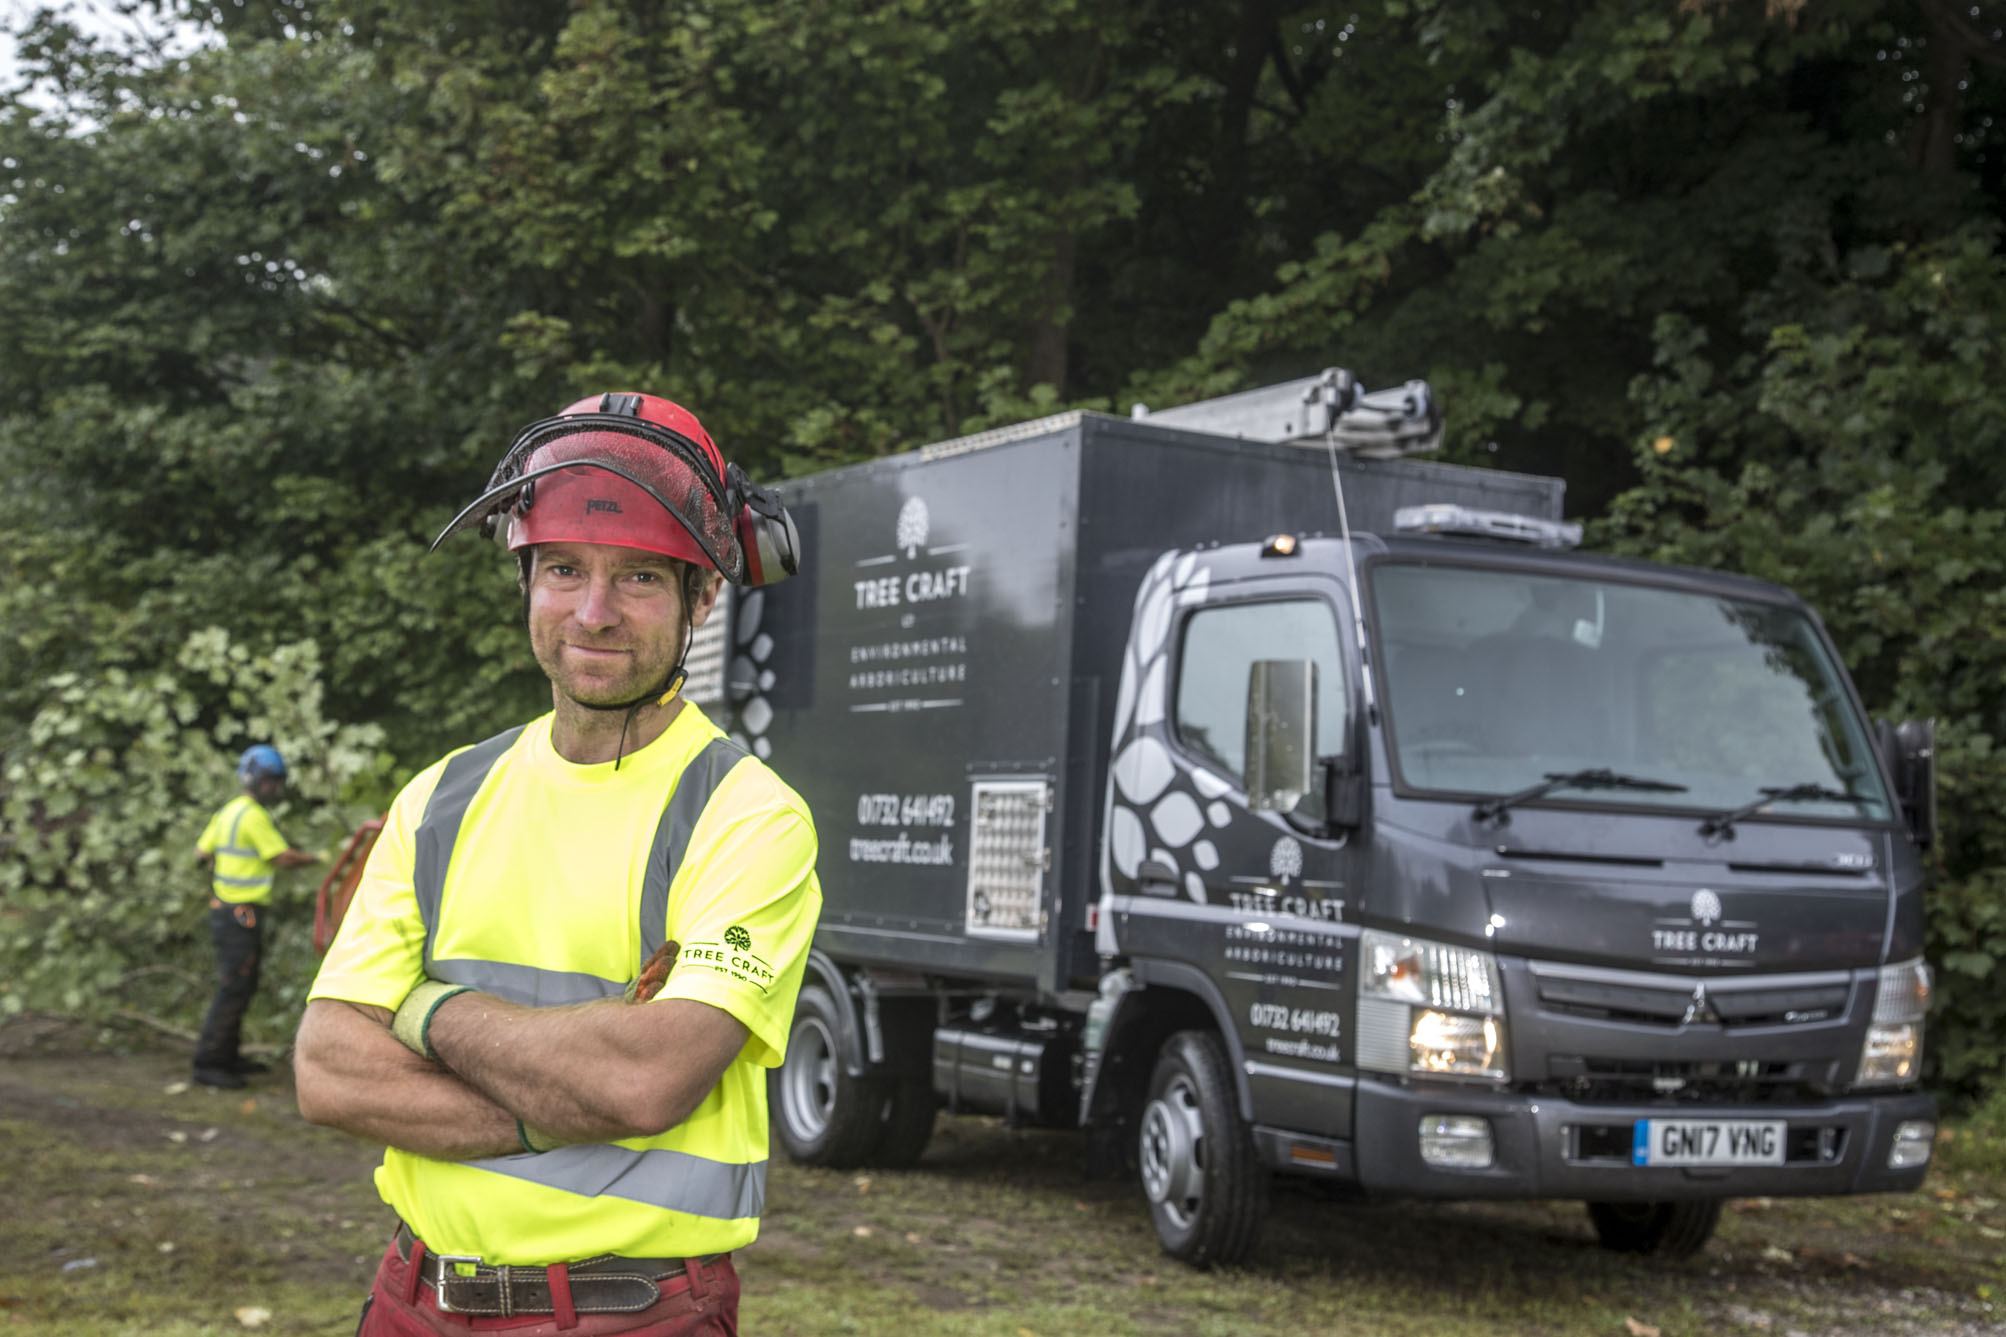 Tree Craft Branches Out With New FUSO Canters From Sparshatts